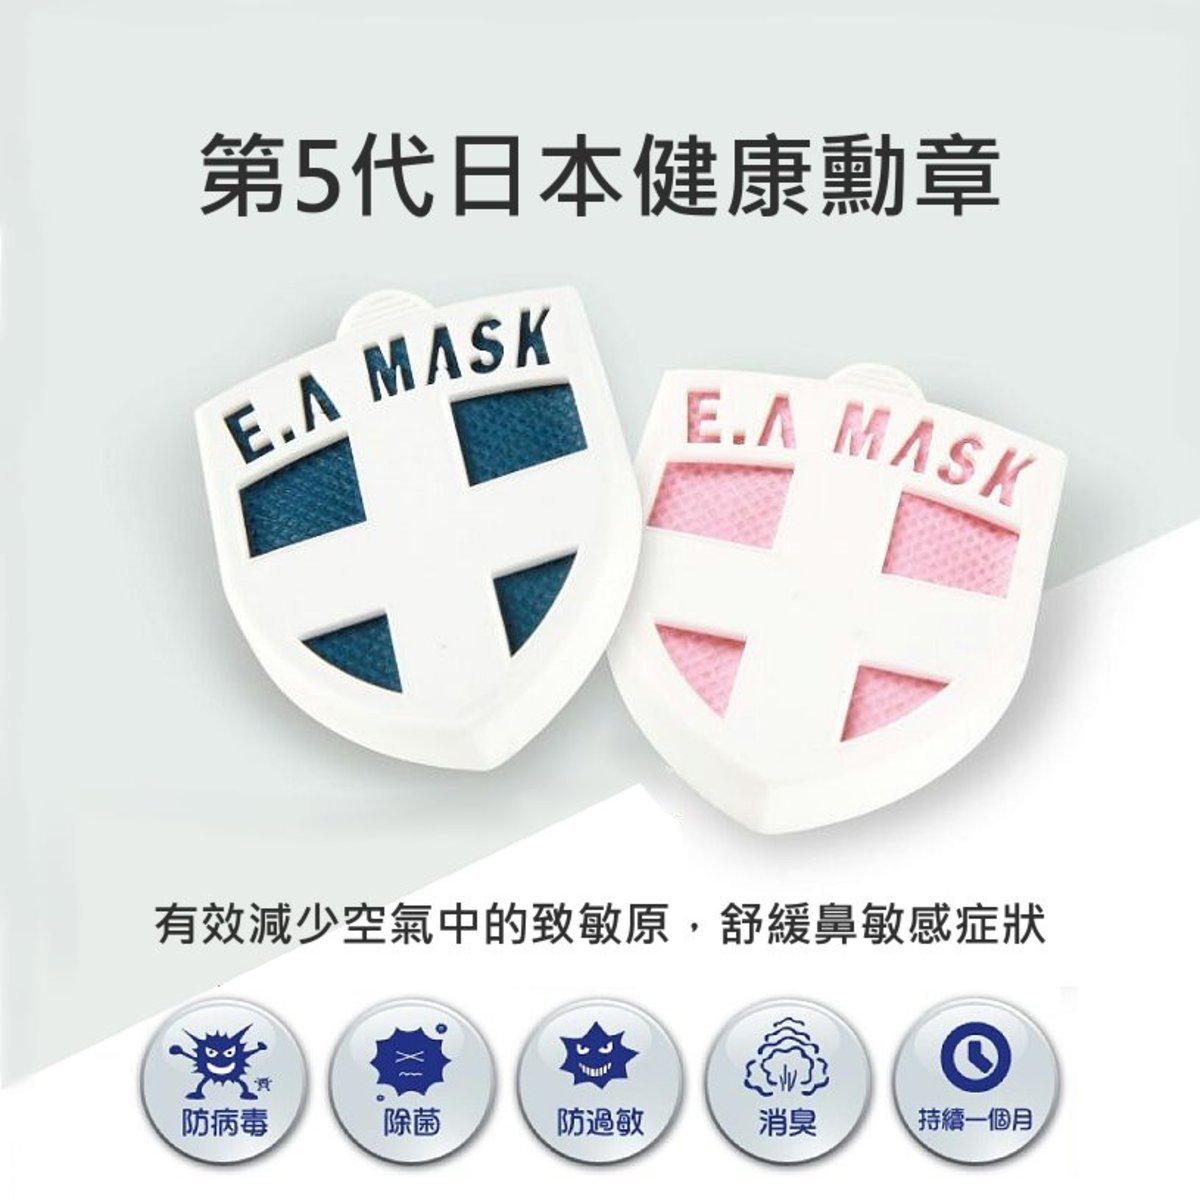 E.A Mask Anti-Bacteria & Virus Badge Clip ES-020